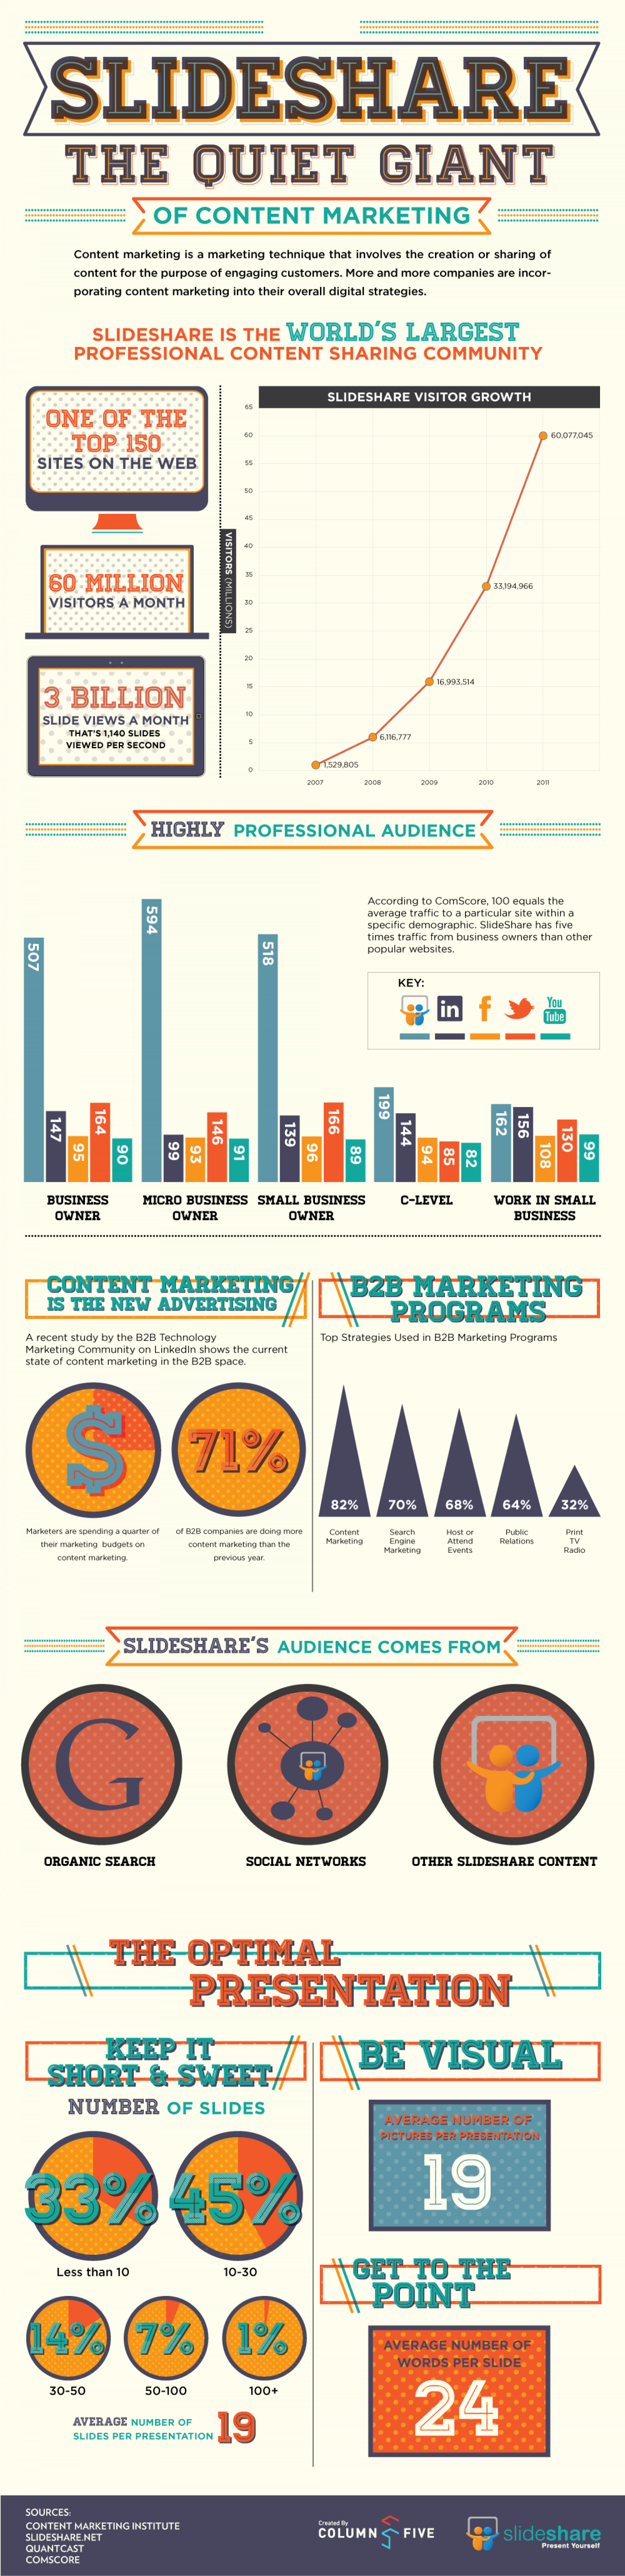 The Quiet Giant of Content Marketing Infographic